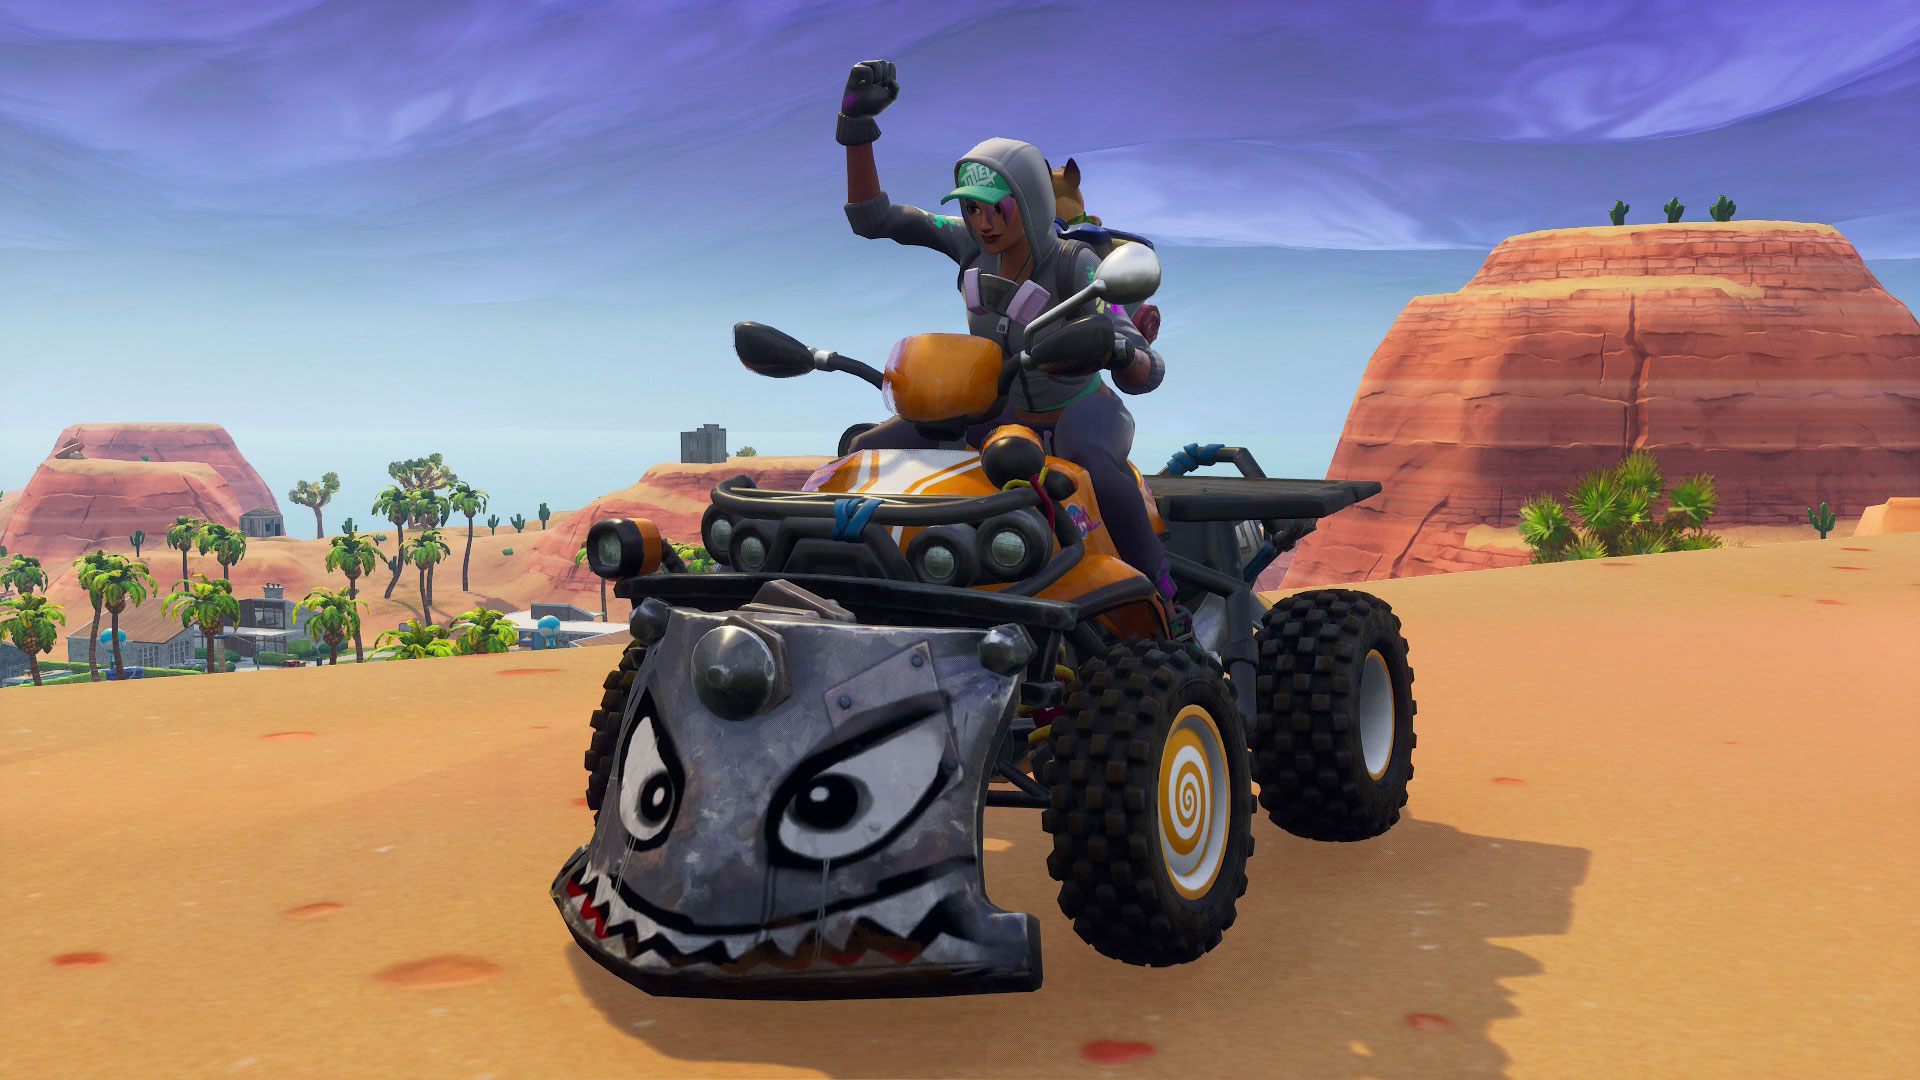 Fortnite Quadcrasher locations: Where to find a Fortnite Quadcrasher